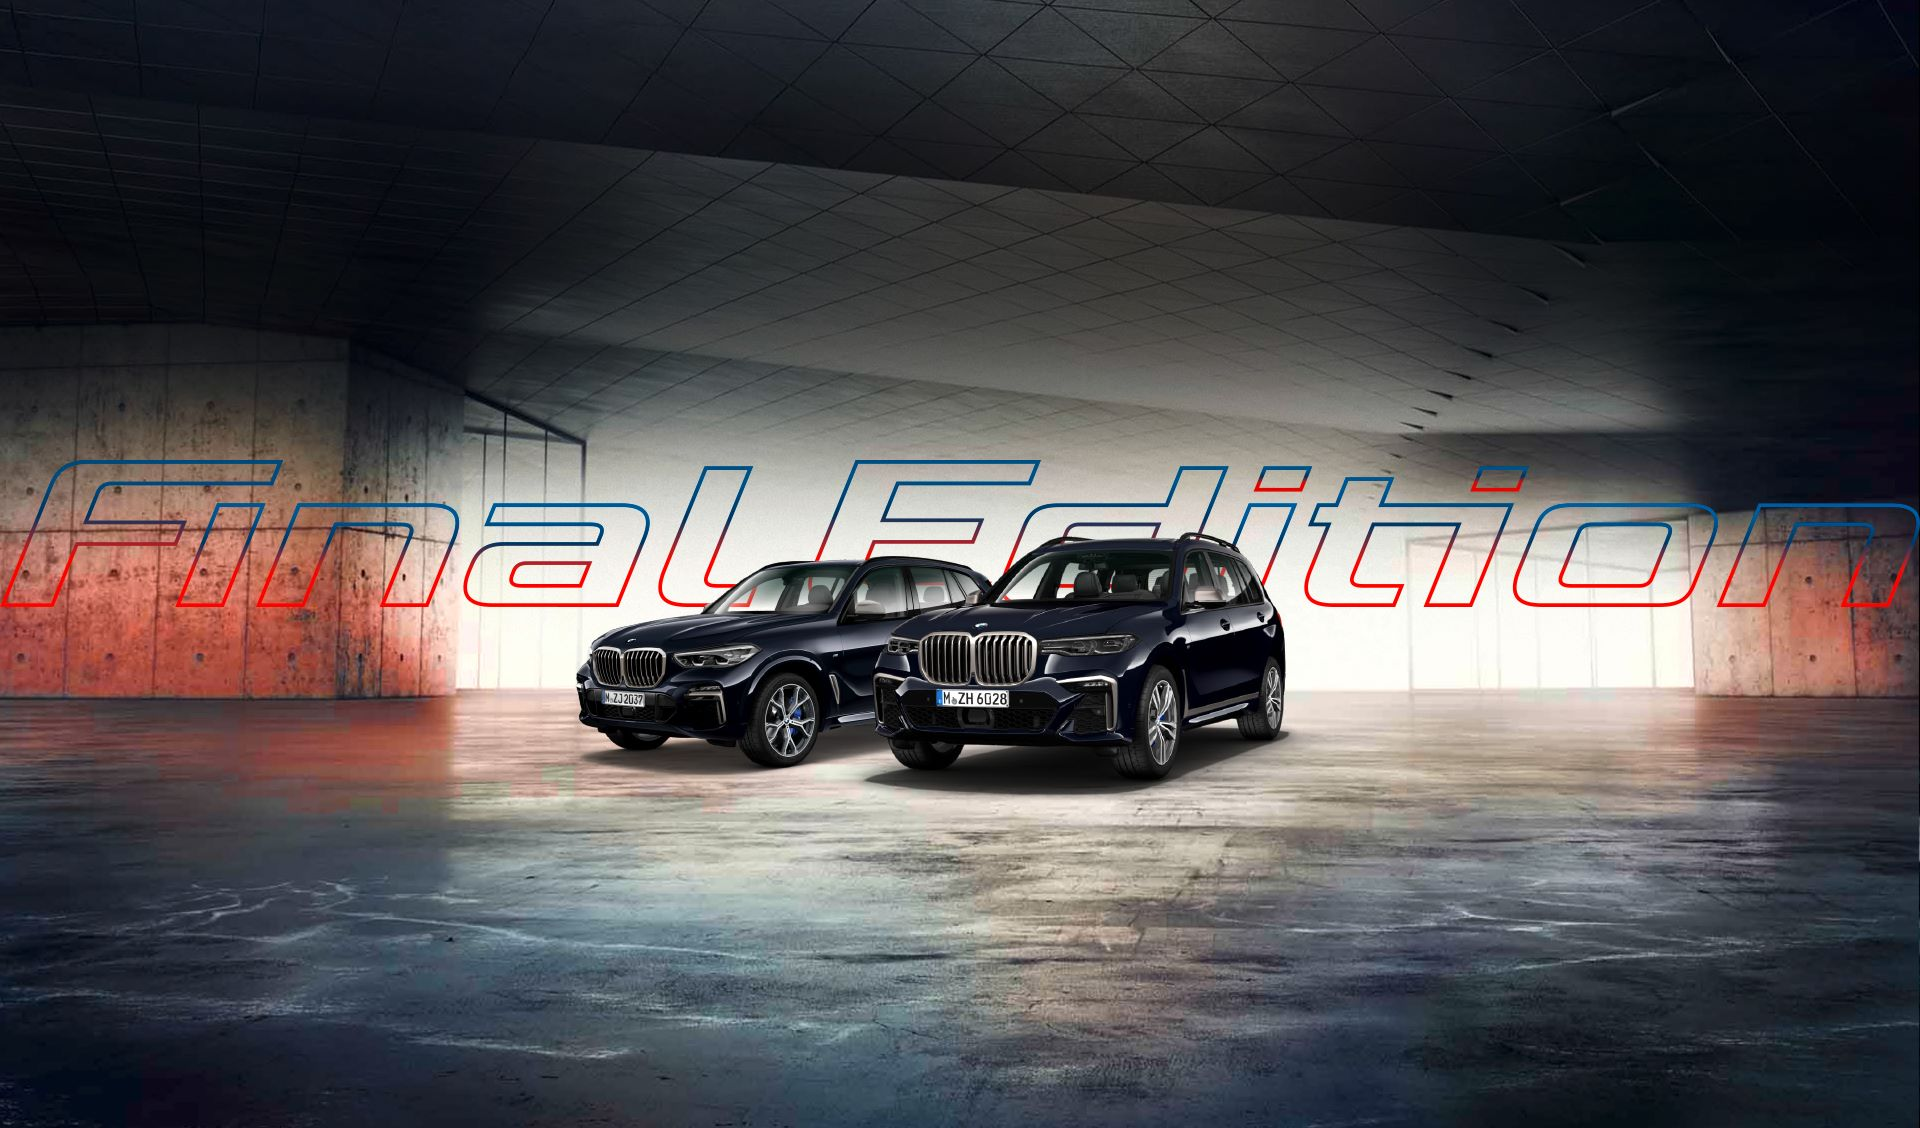 BMW-X5-M50d-and-X7-M50d-Final-Edition-1